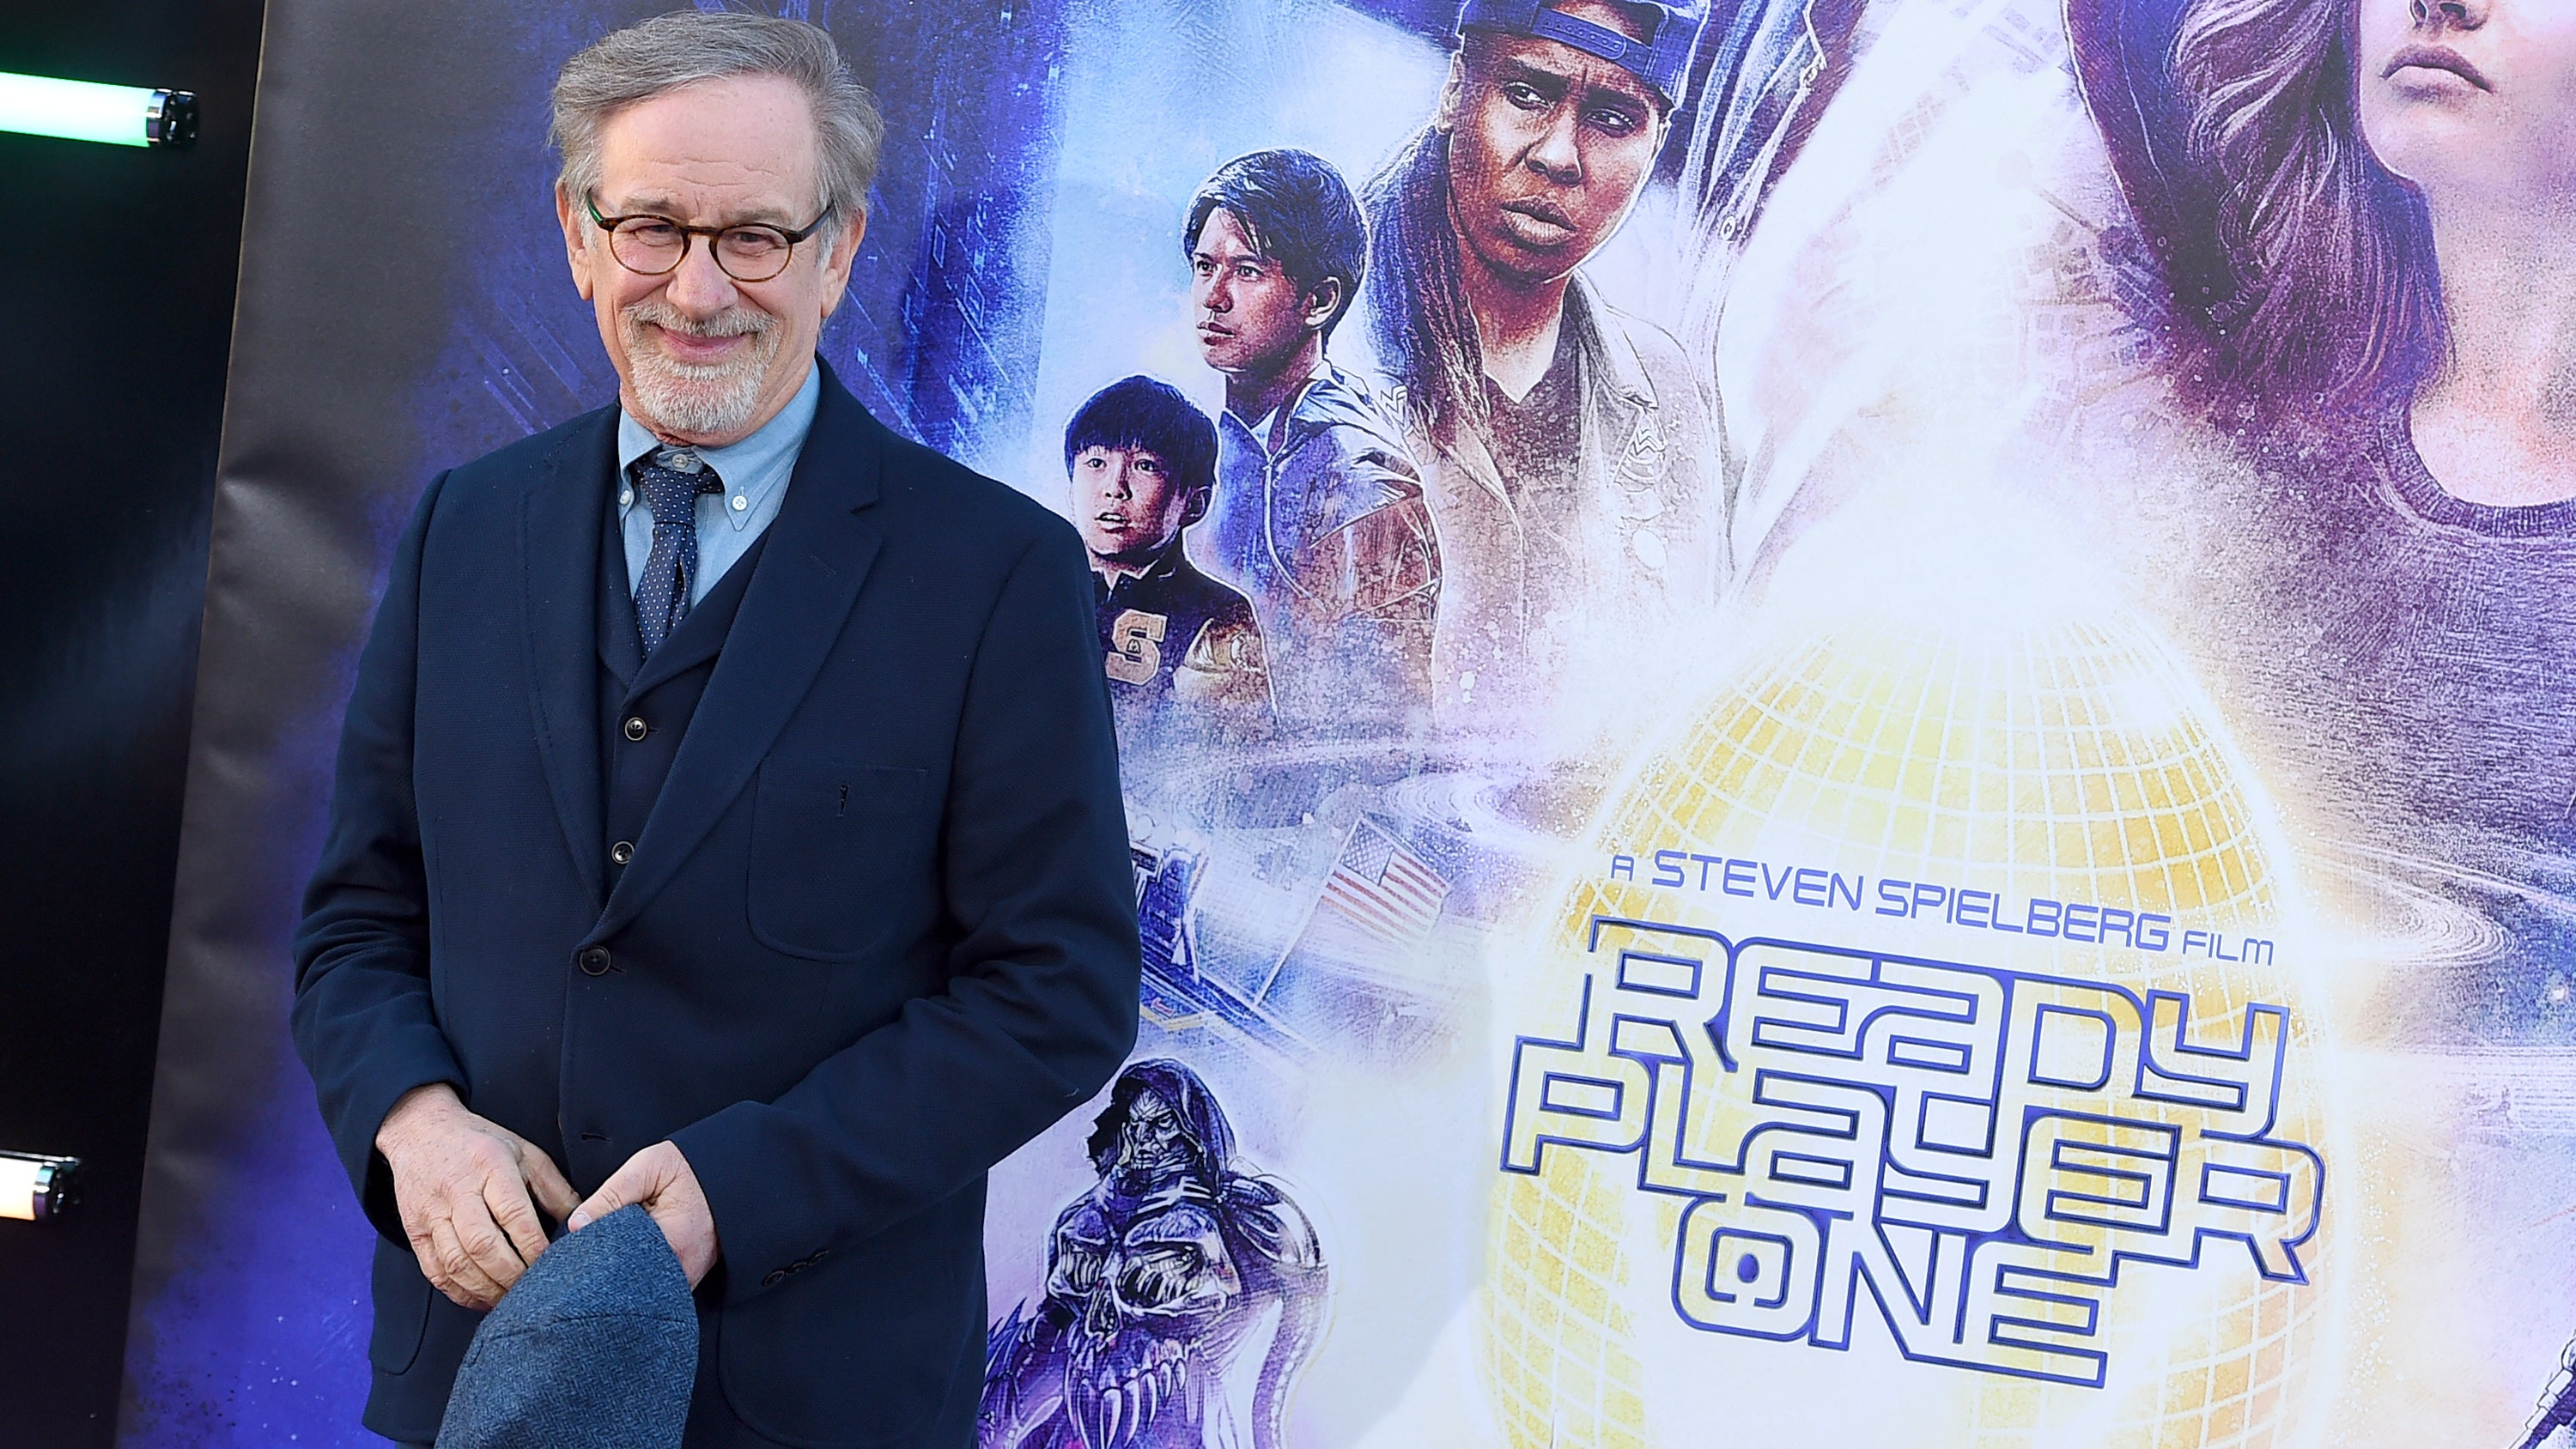 Does Ready Player One Director Steven Spielberg Know What The Heck A Playstation Is?